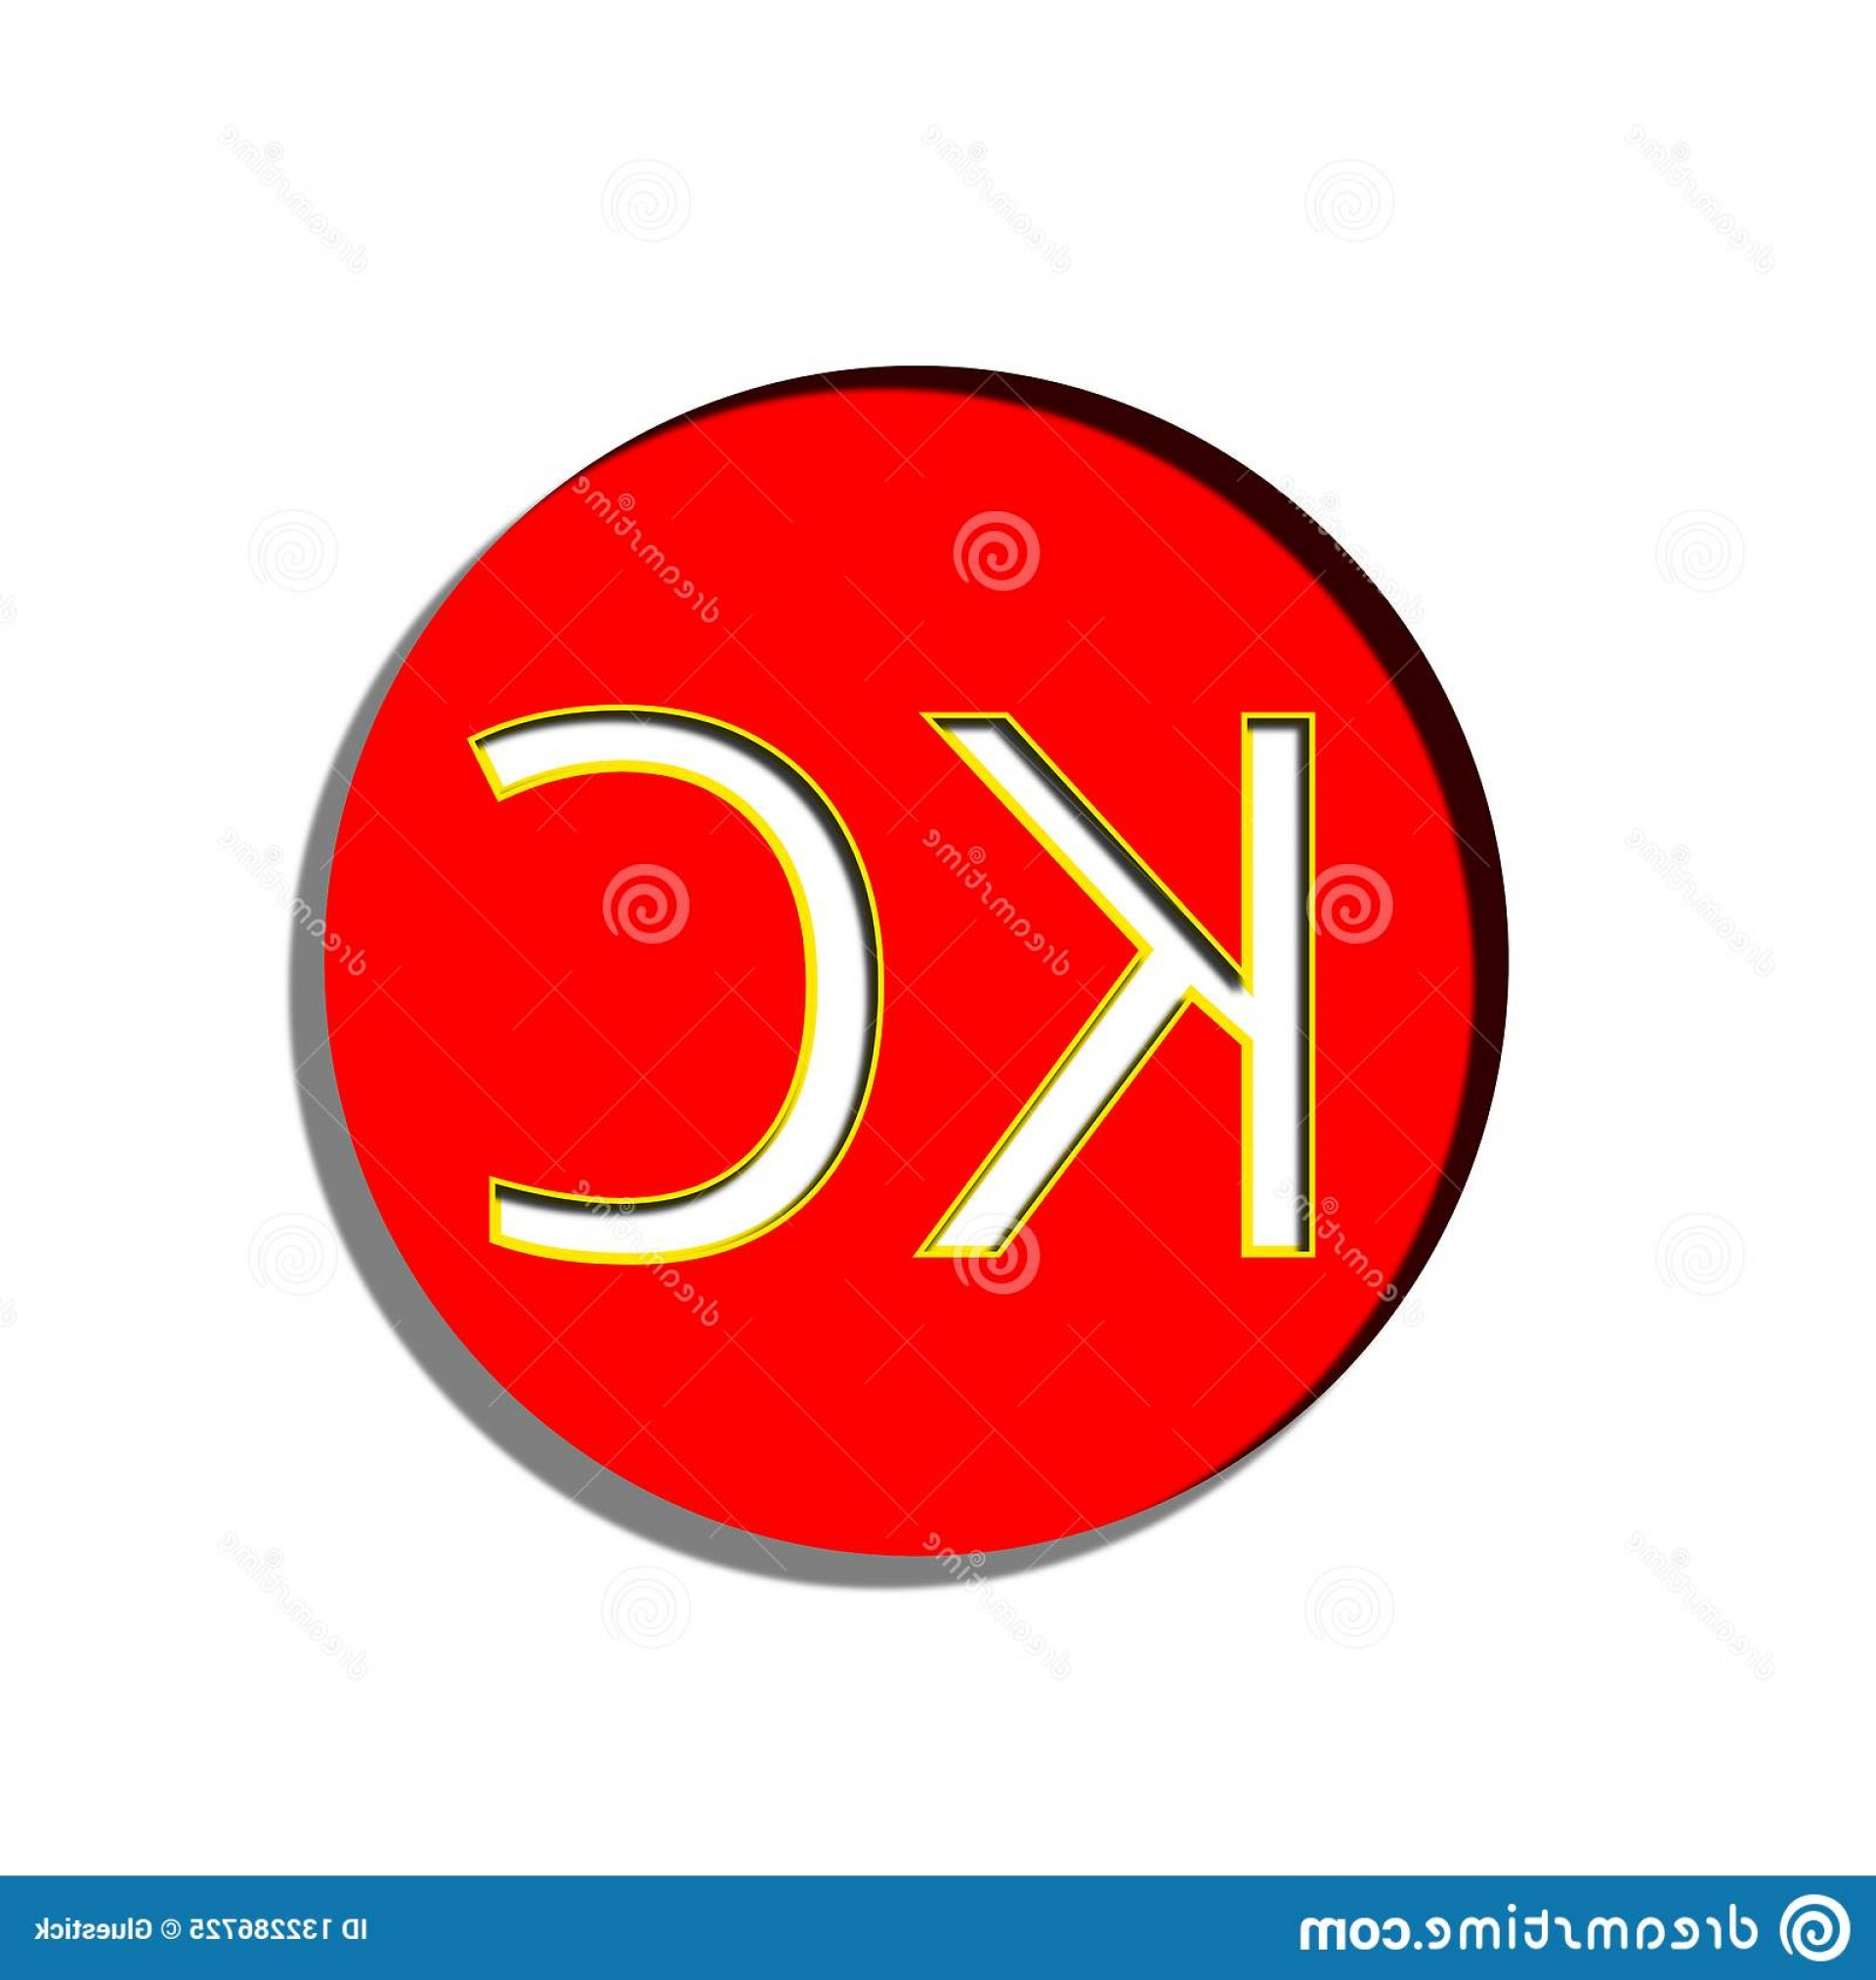 Kansas City Chiefs Logo Vector: Kansas City Chiefs Red Yellow White Kansas City Chiefs Nfl Round Sports Team Pin Vector Image